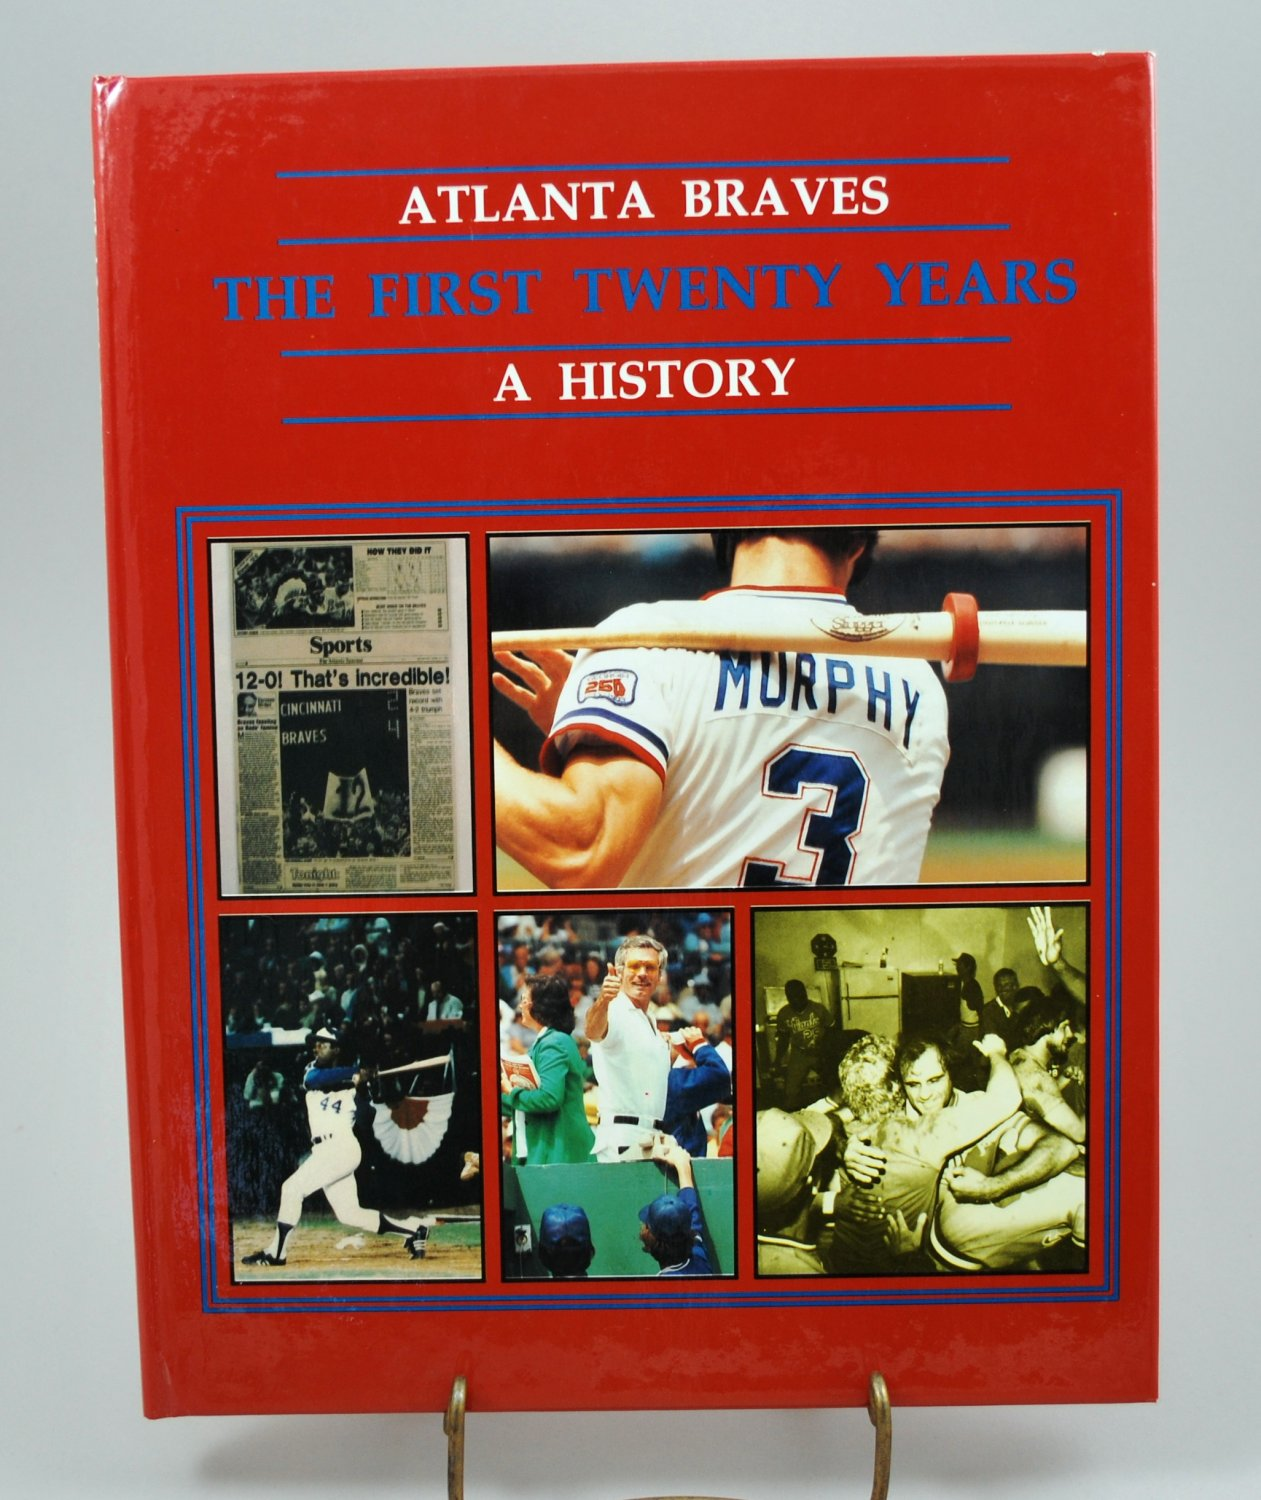 Atlanta Braves The First Twenty Years A History by W. Fuller Jr HB 1966-1985